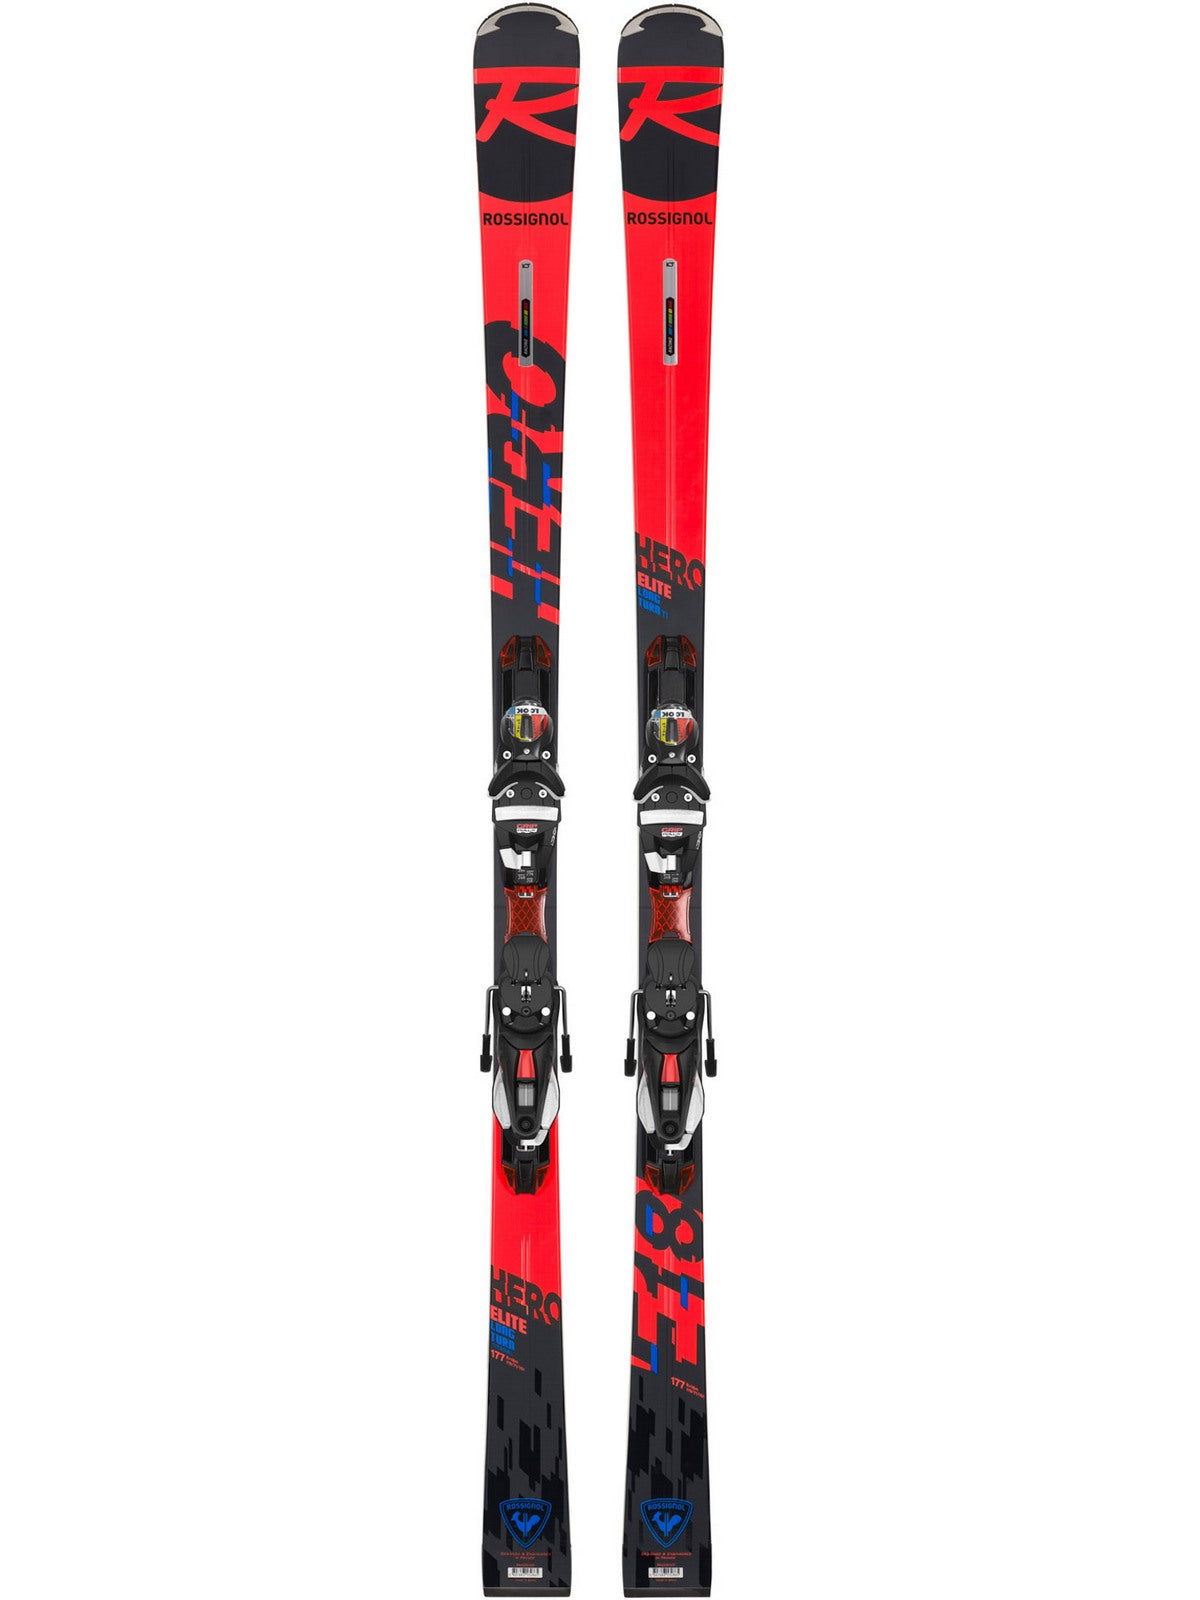 Narty ROSSIGNOL HERO ELITE LT TI K + wiązania LOOK NX 12 K.GW B80 BLACK ICON